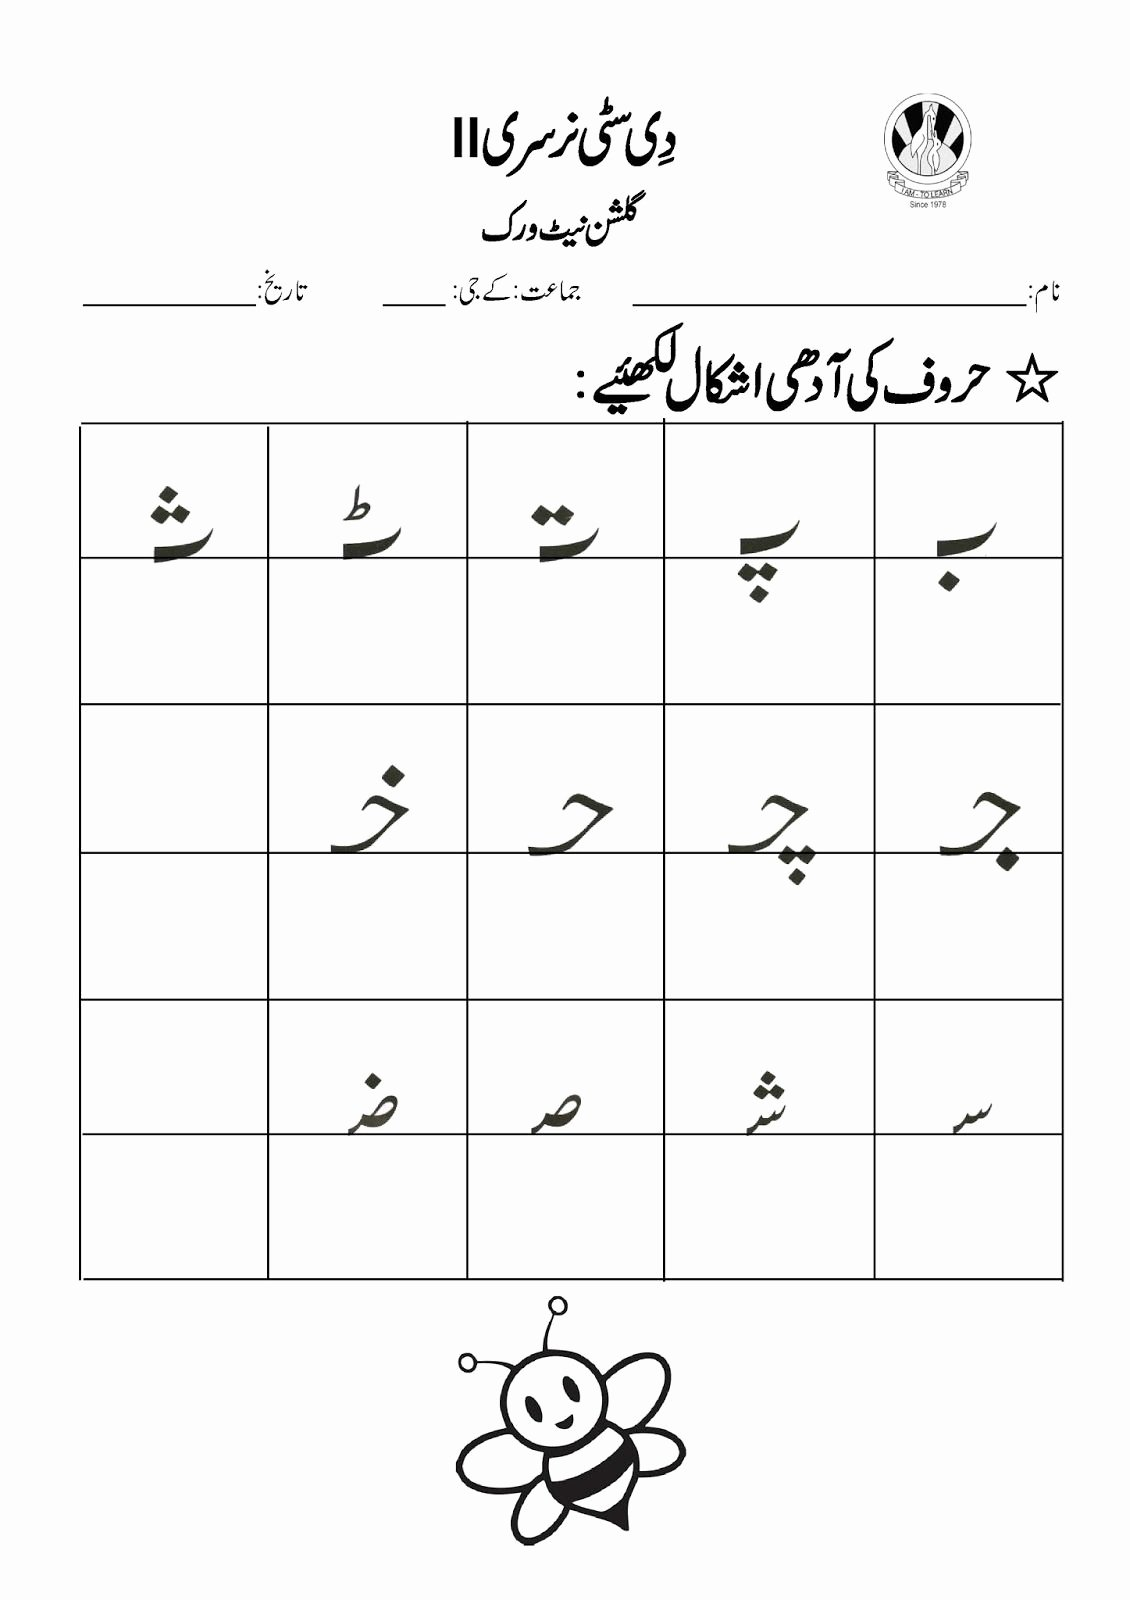 Urdu Worksheets for Preschoolers Printable Sr Gulshan the City Nursery Ii Urdu First Term Worksheet for